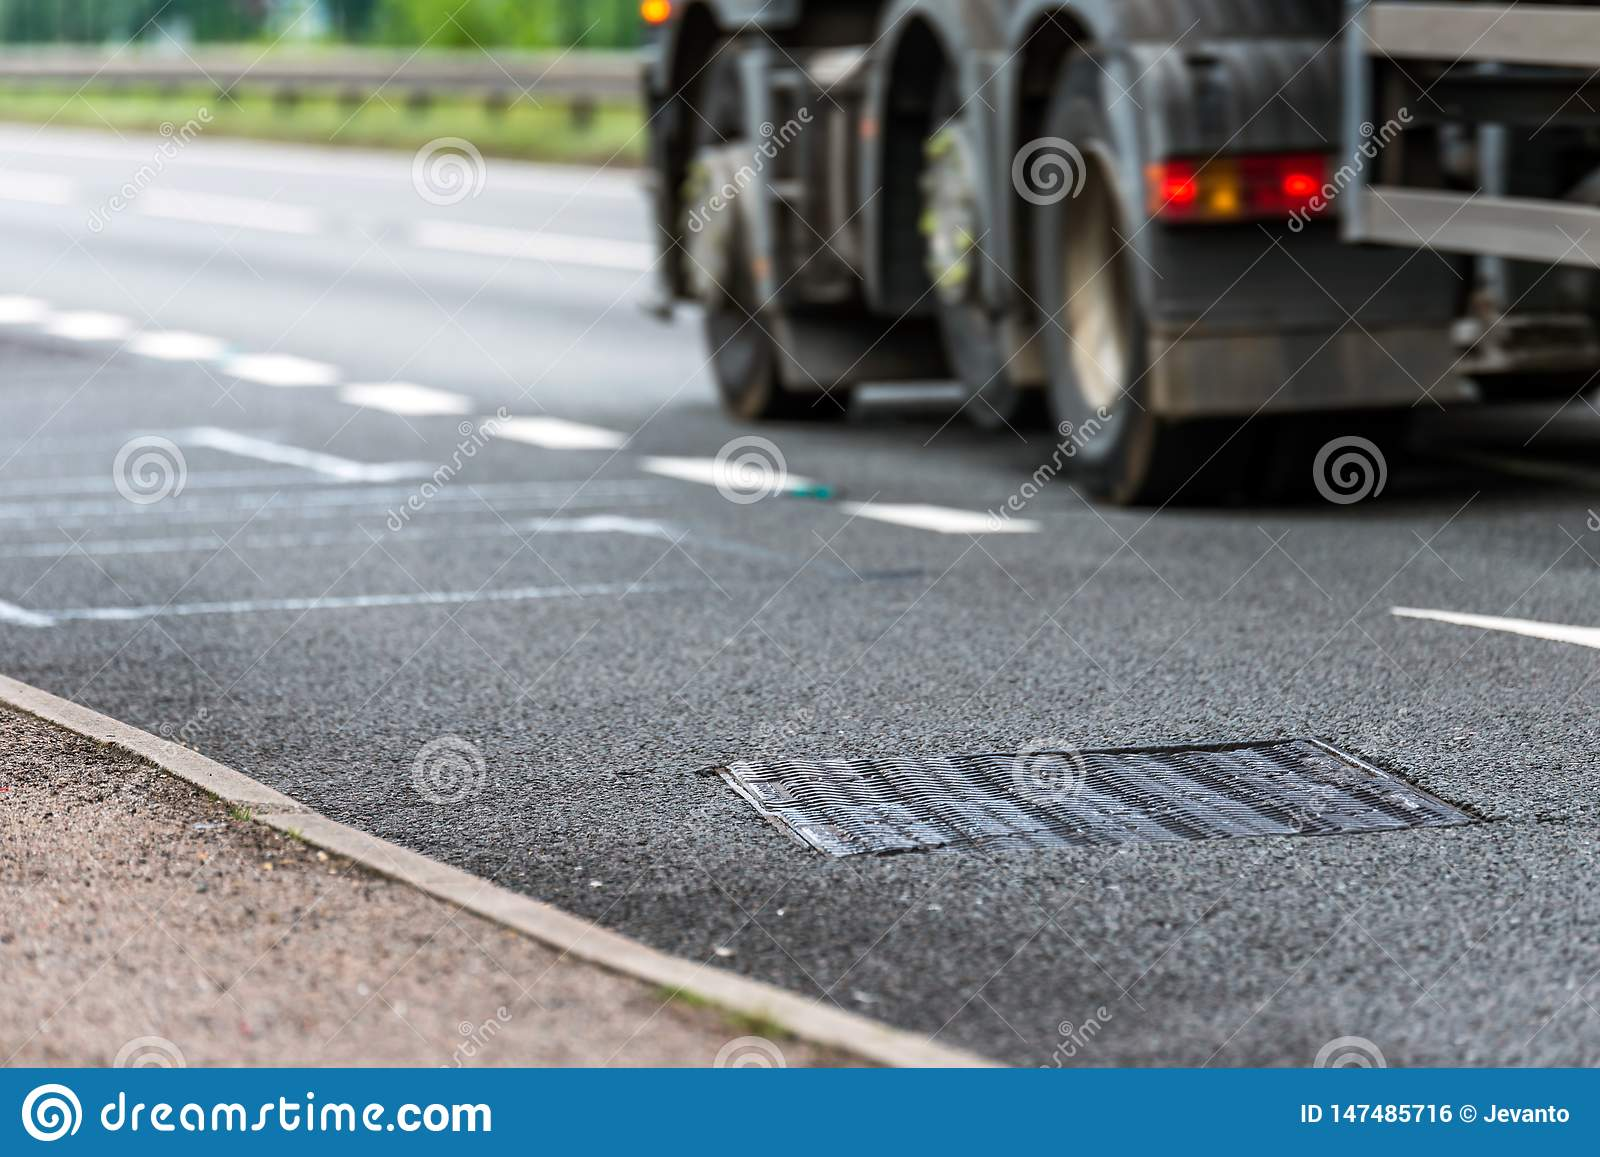 Drainage water collector system on uk motorway with truck in fast motion on background